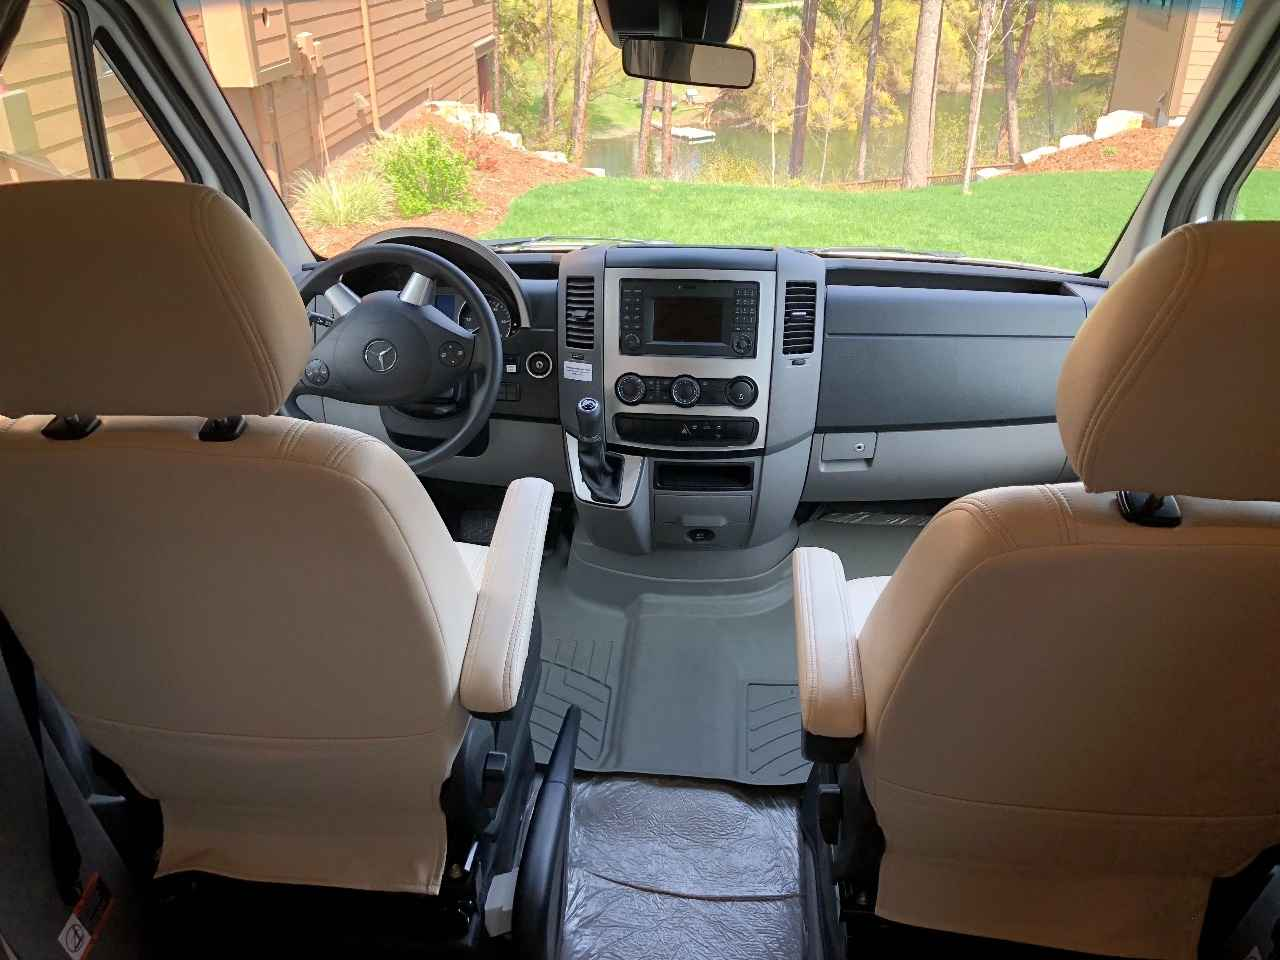 2016 Used Leisure Travel UNITY FX Class C in Montana MT